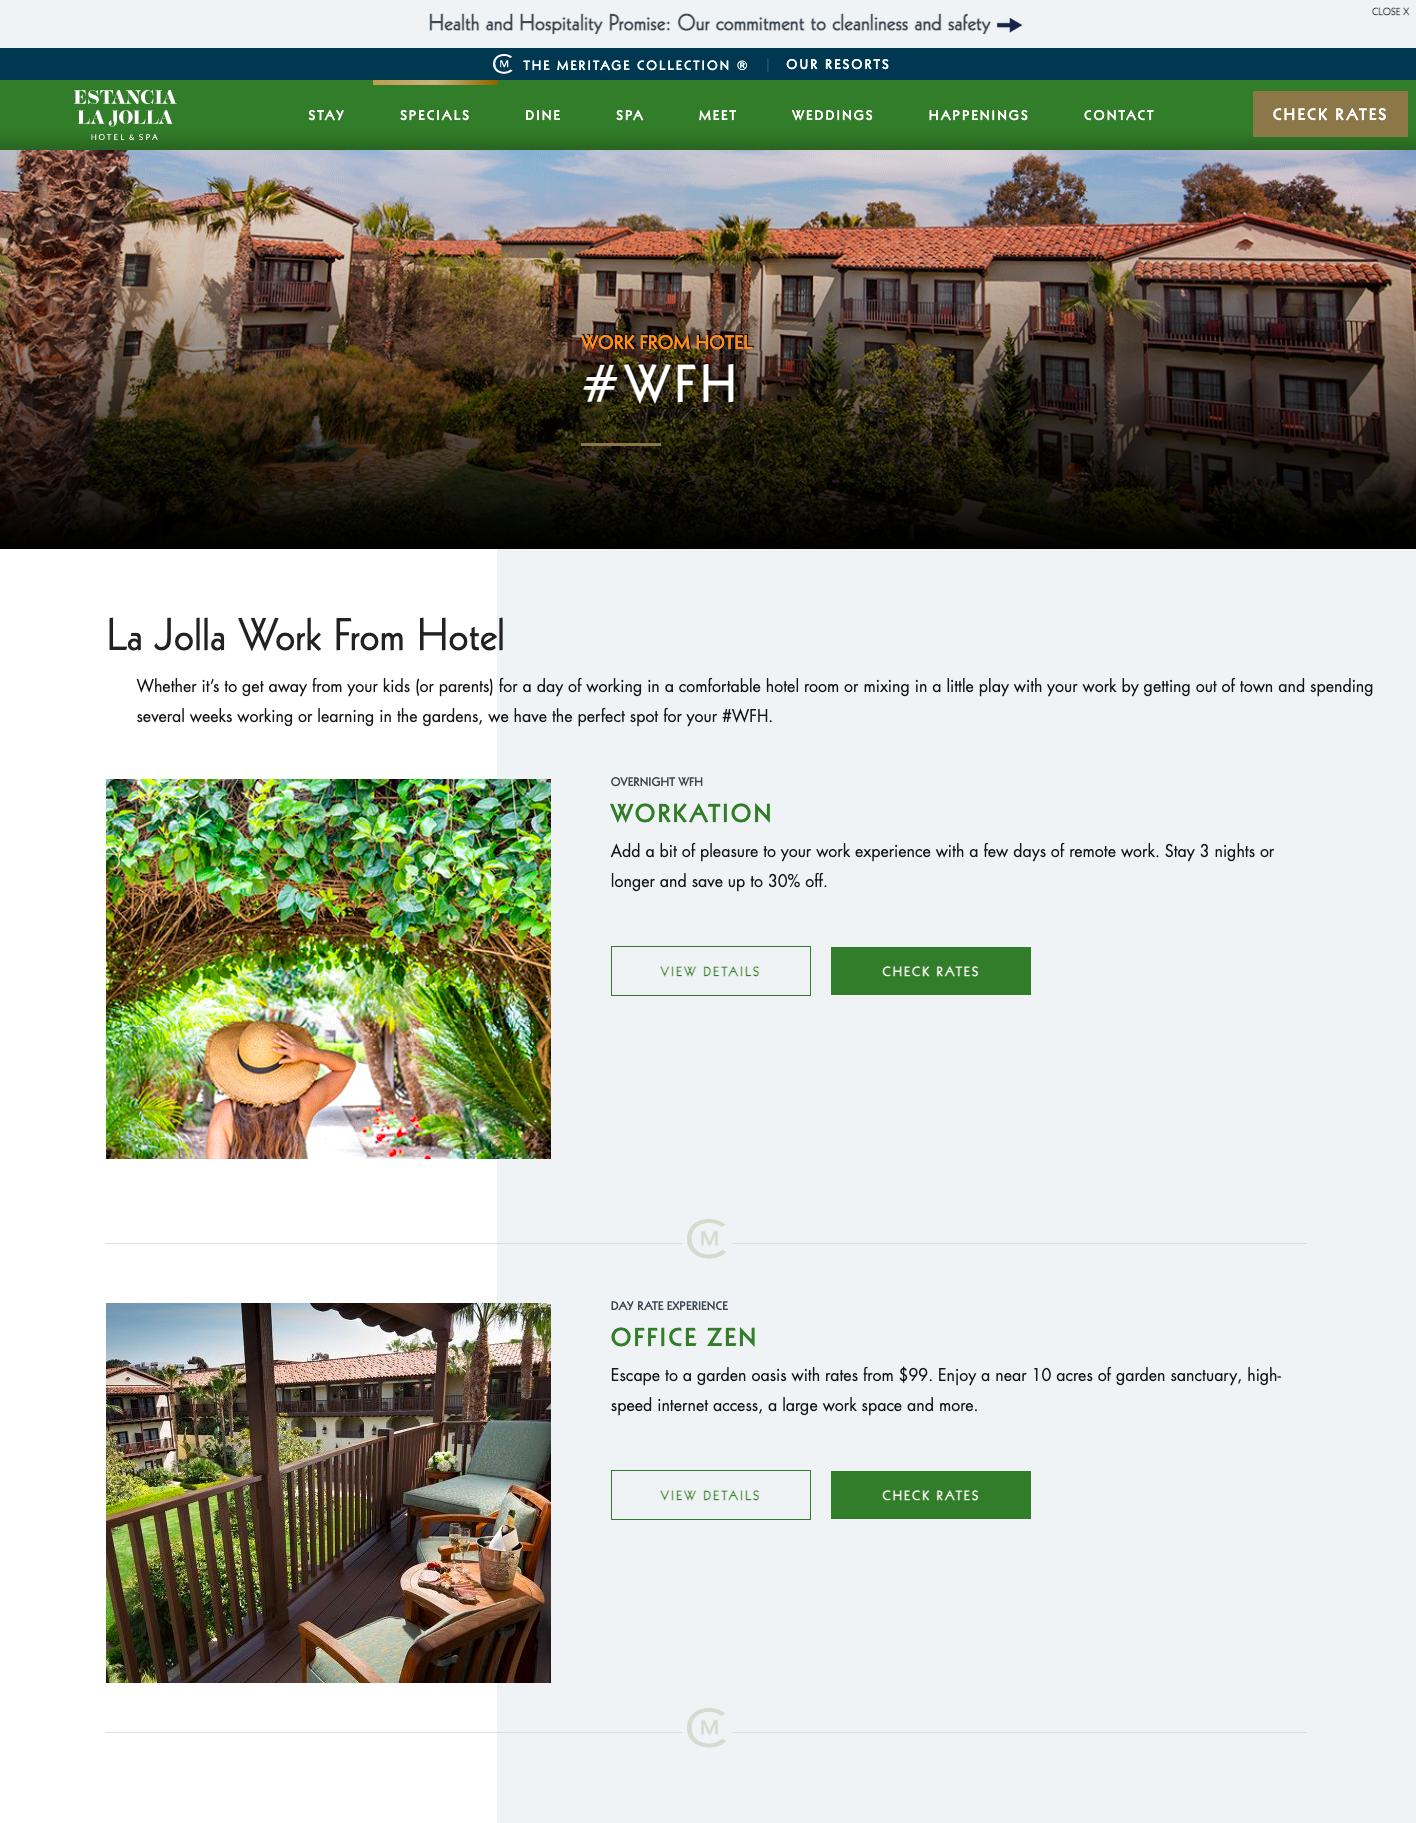 La Jolla Hotel Website promoting work from hotel options and safety measures